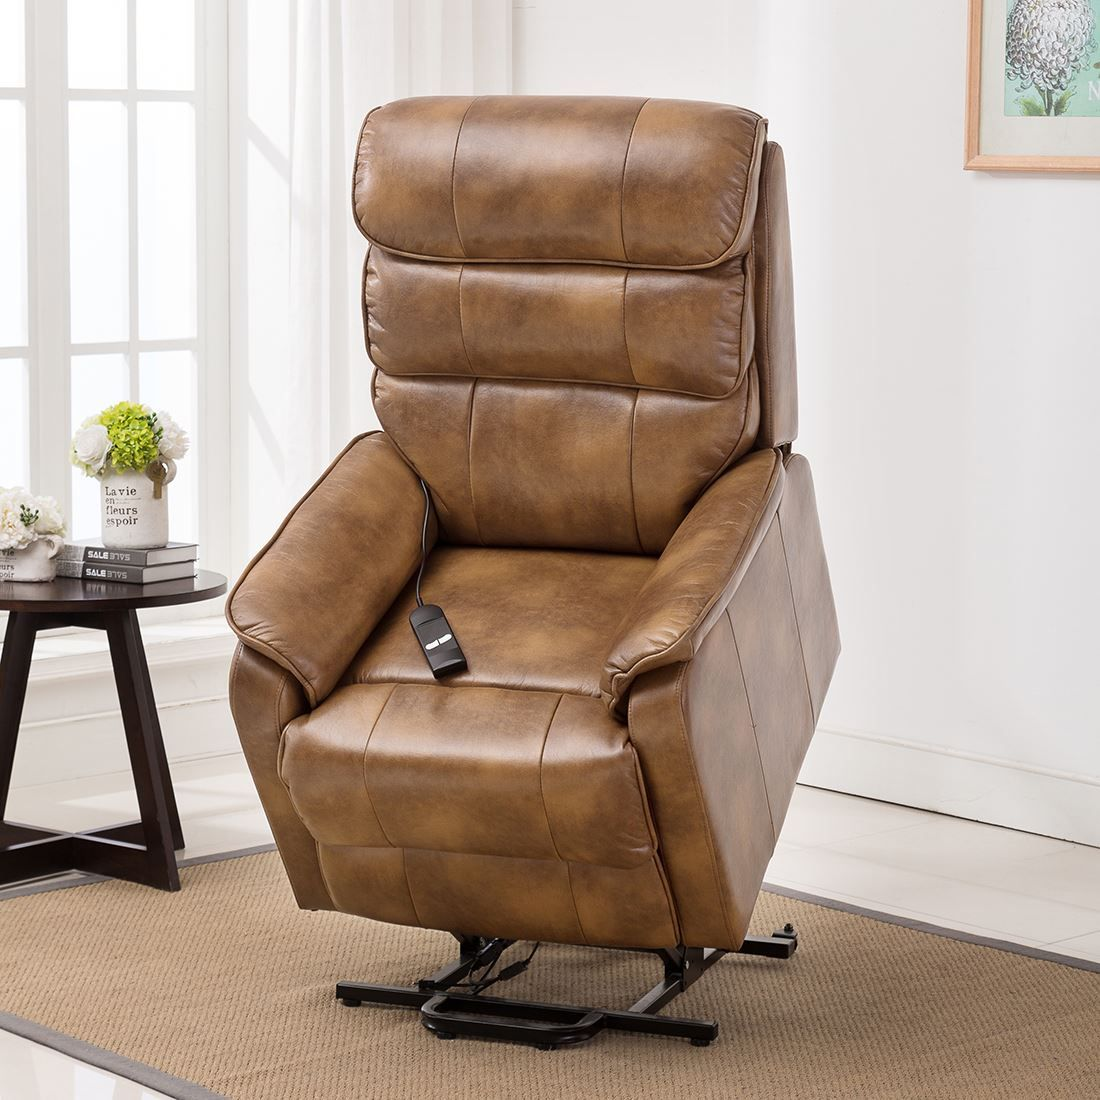 Best leather riser recliner chairs with images